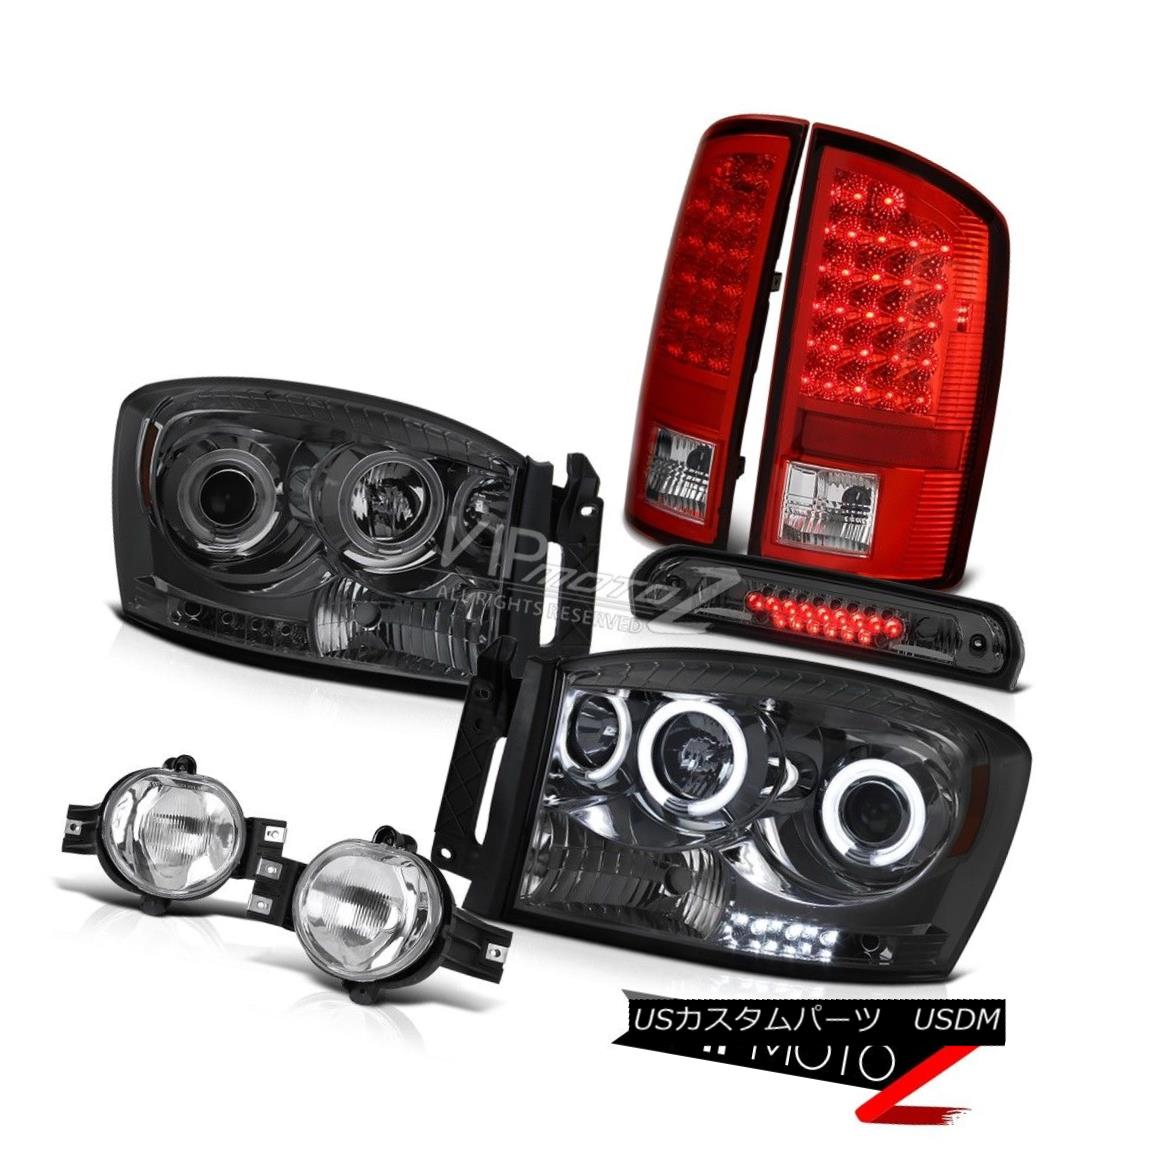 ヘッドライト 2007-2008 Ram Hemi C.C.F.L Smoke Headlights LED Tail Lights Chrome Fog High 3rd 2007-2008 Ram Hemi C.C.F.LスモークヘッドライトLEDテールライトクロムフォグハイ3